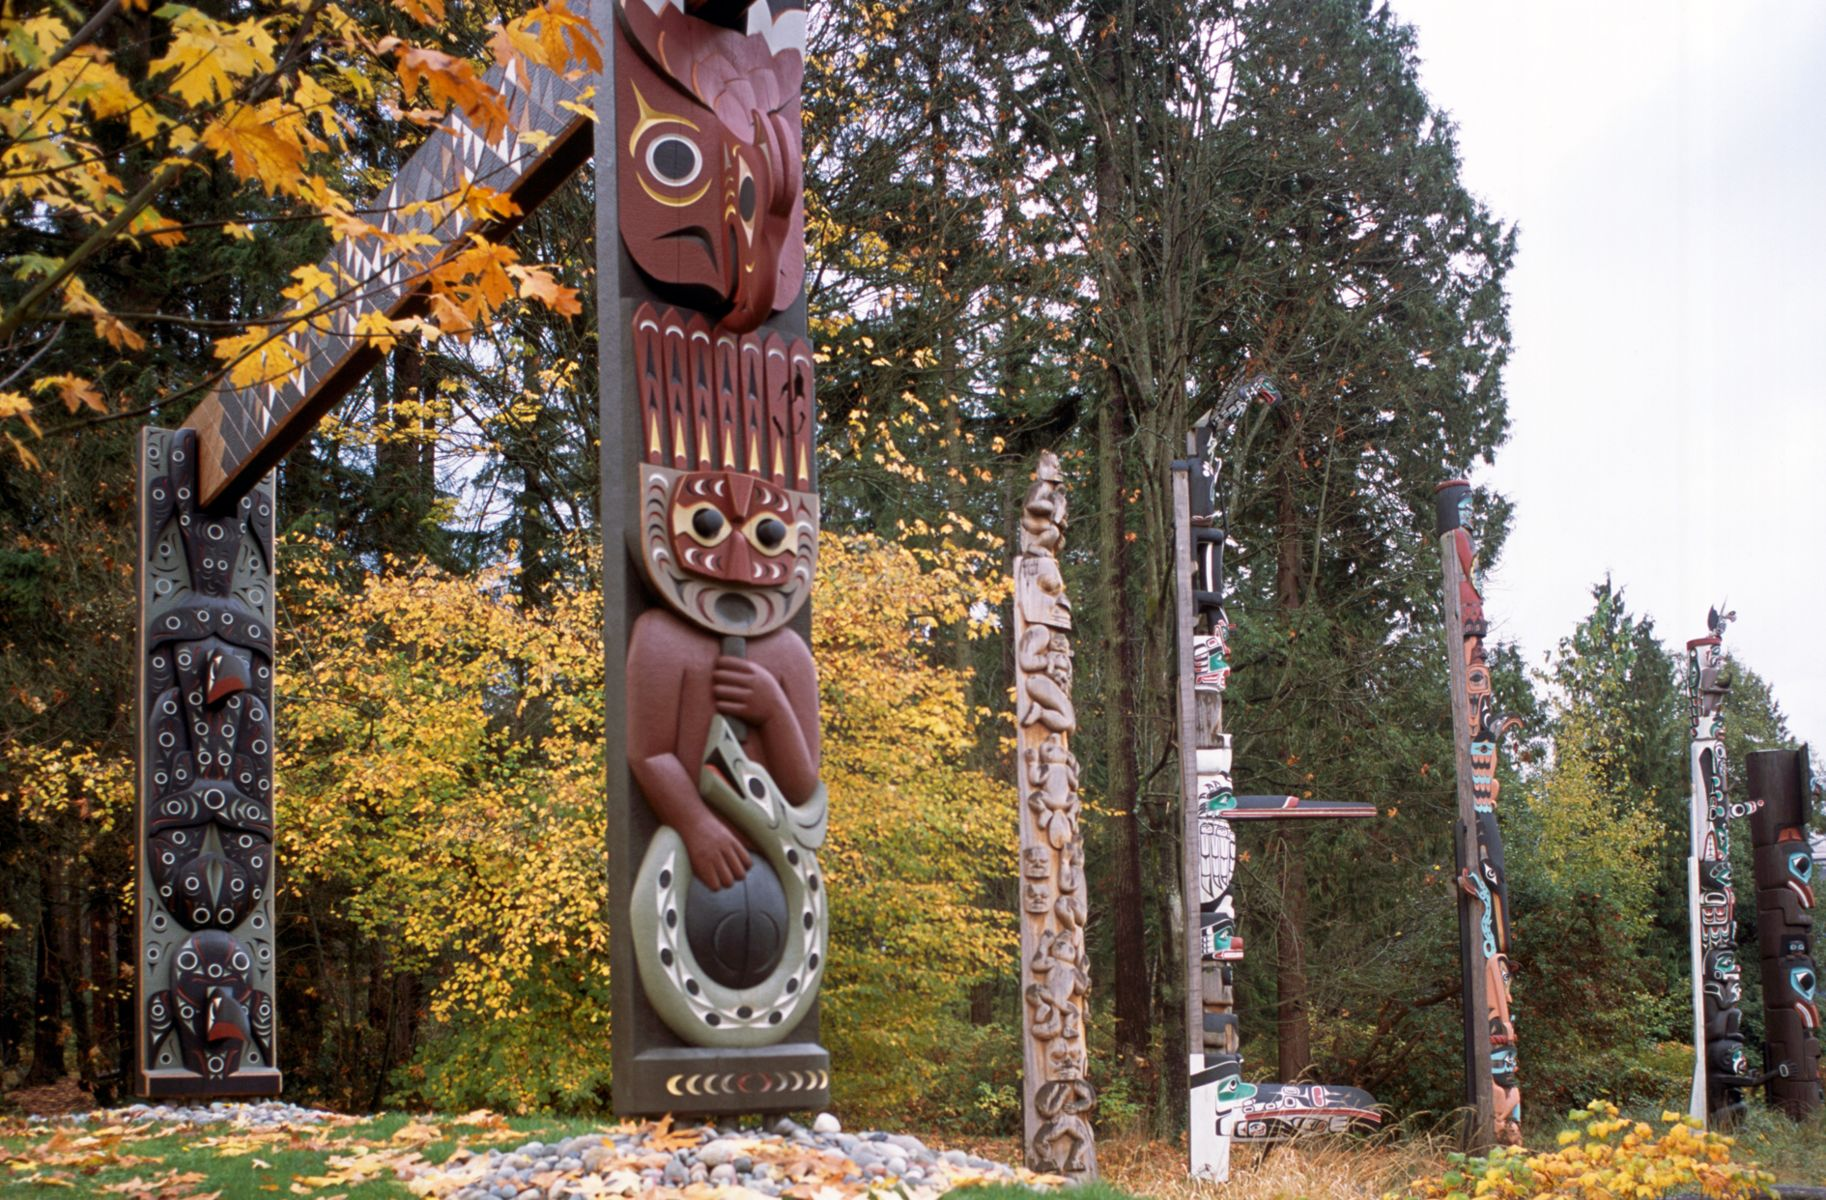 Tall totem poles line the edge of a forest.